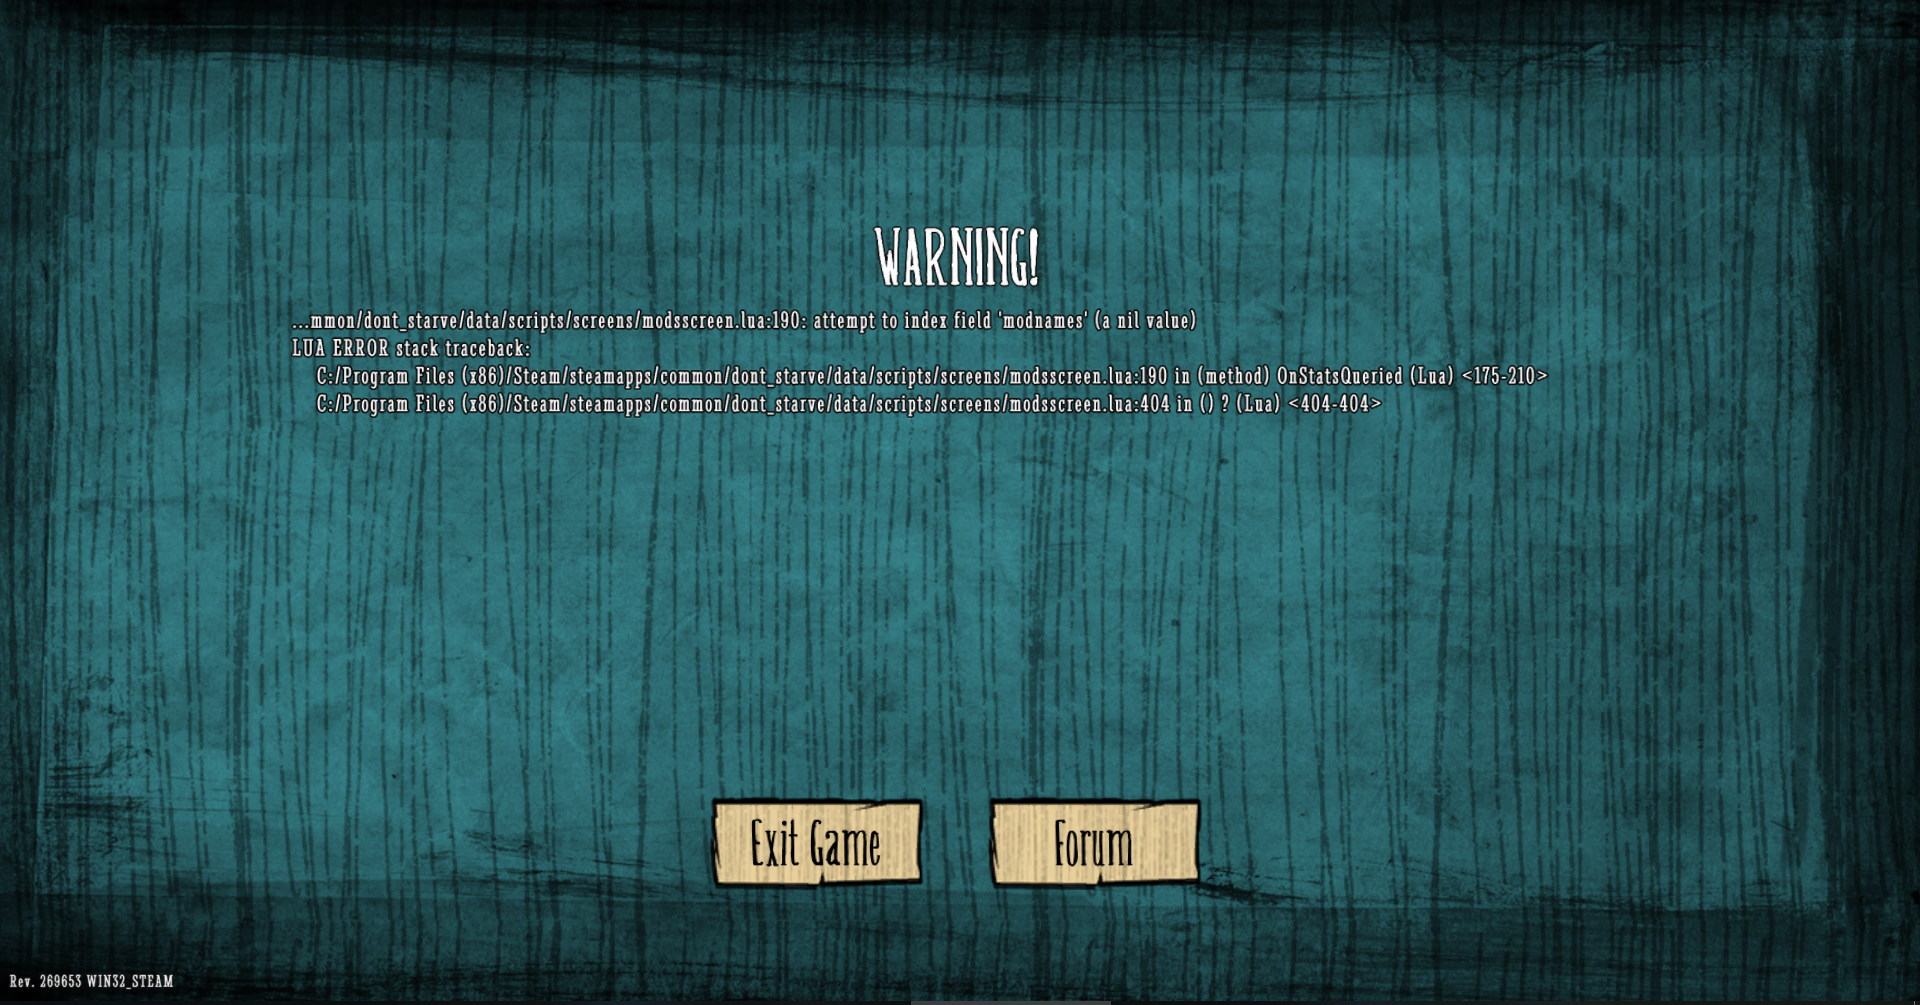 Crash when i try to go in the mod menu - [Don't Starve] Bug Tracker